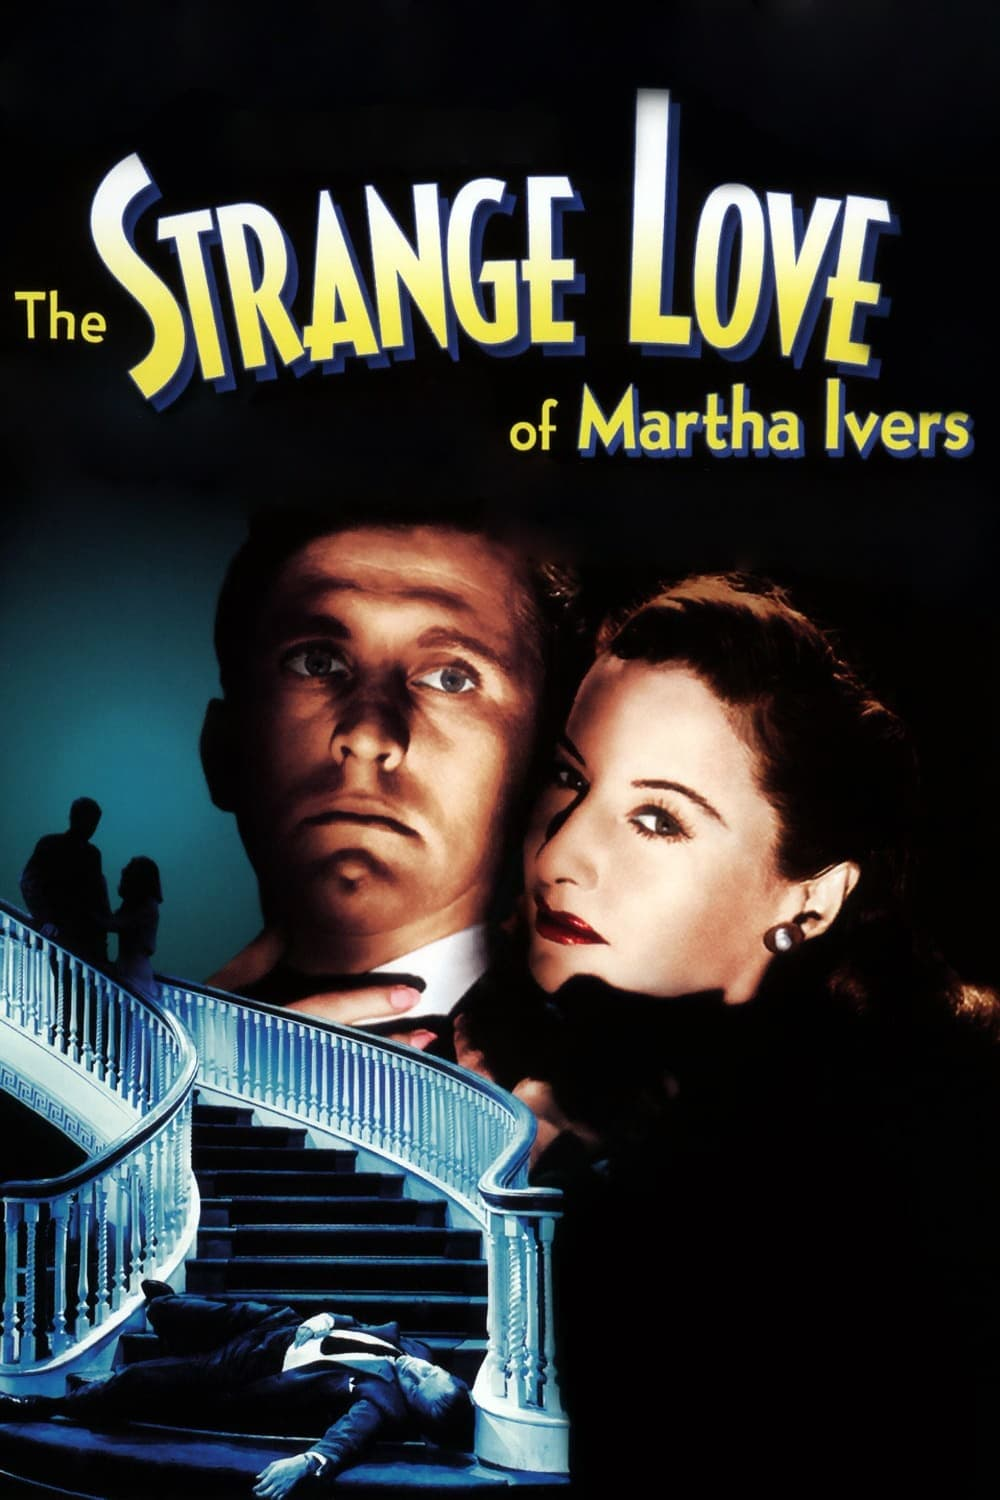 The Strange Love of Martha Ivers on FREECABLE TV